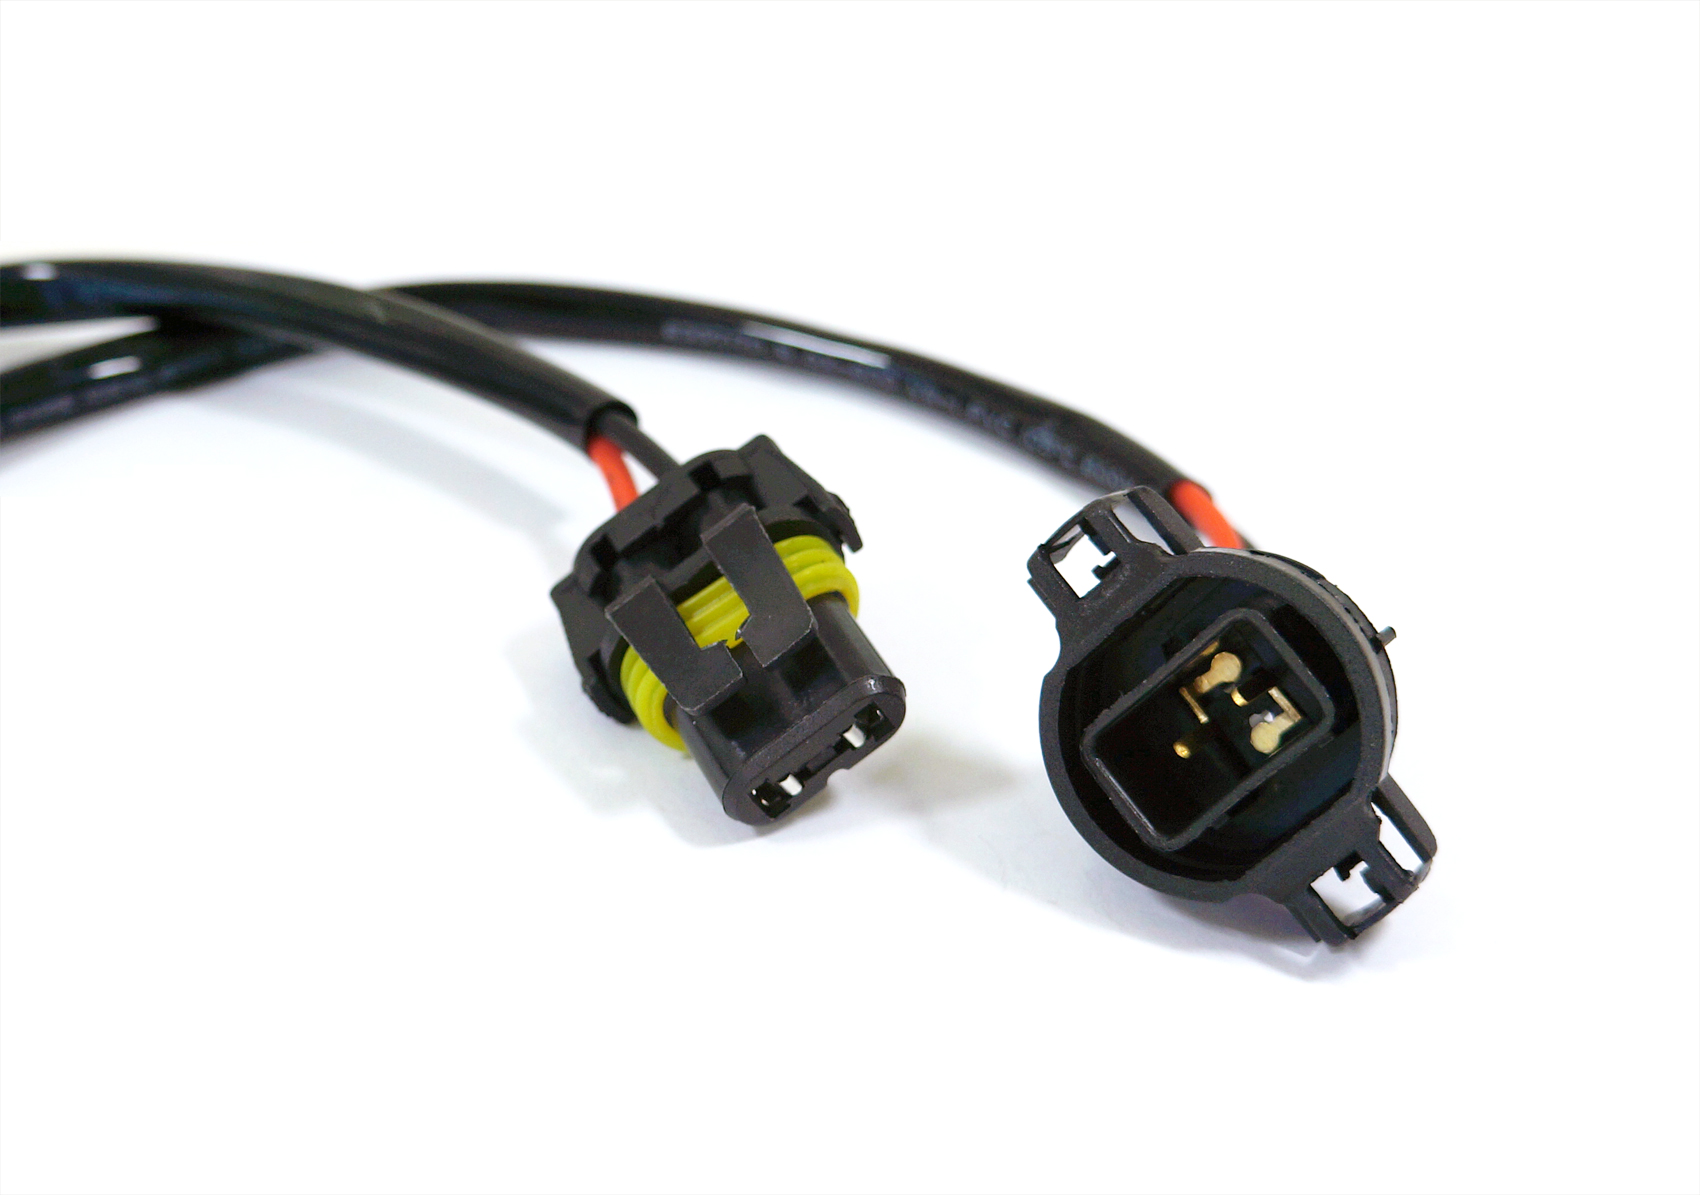 Hid Wire Harness Cable Ballast To Socket Plug 5202 H16 9009 Two 2504 Ps24w Adapter For Fog Lights Drl Relay Wiring Ebay High Performance 9008 Plugs